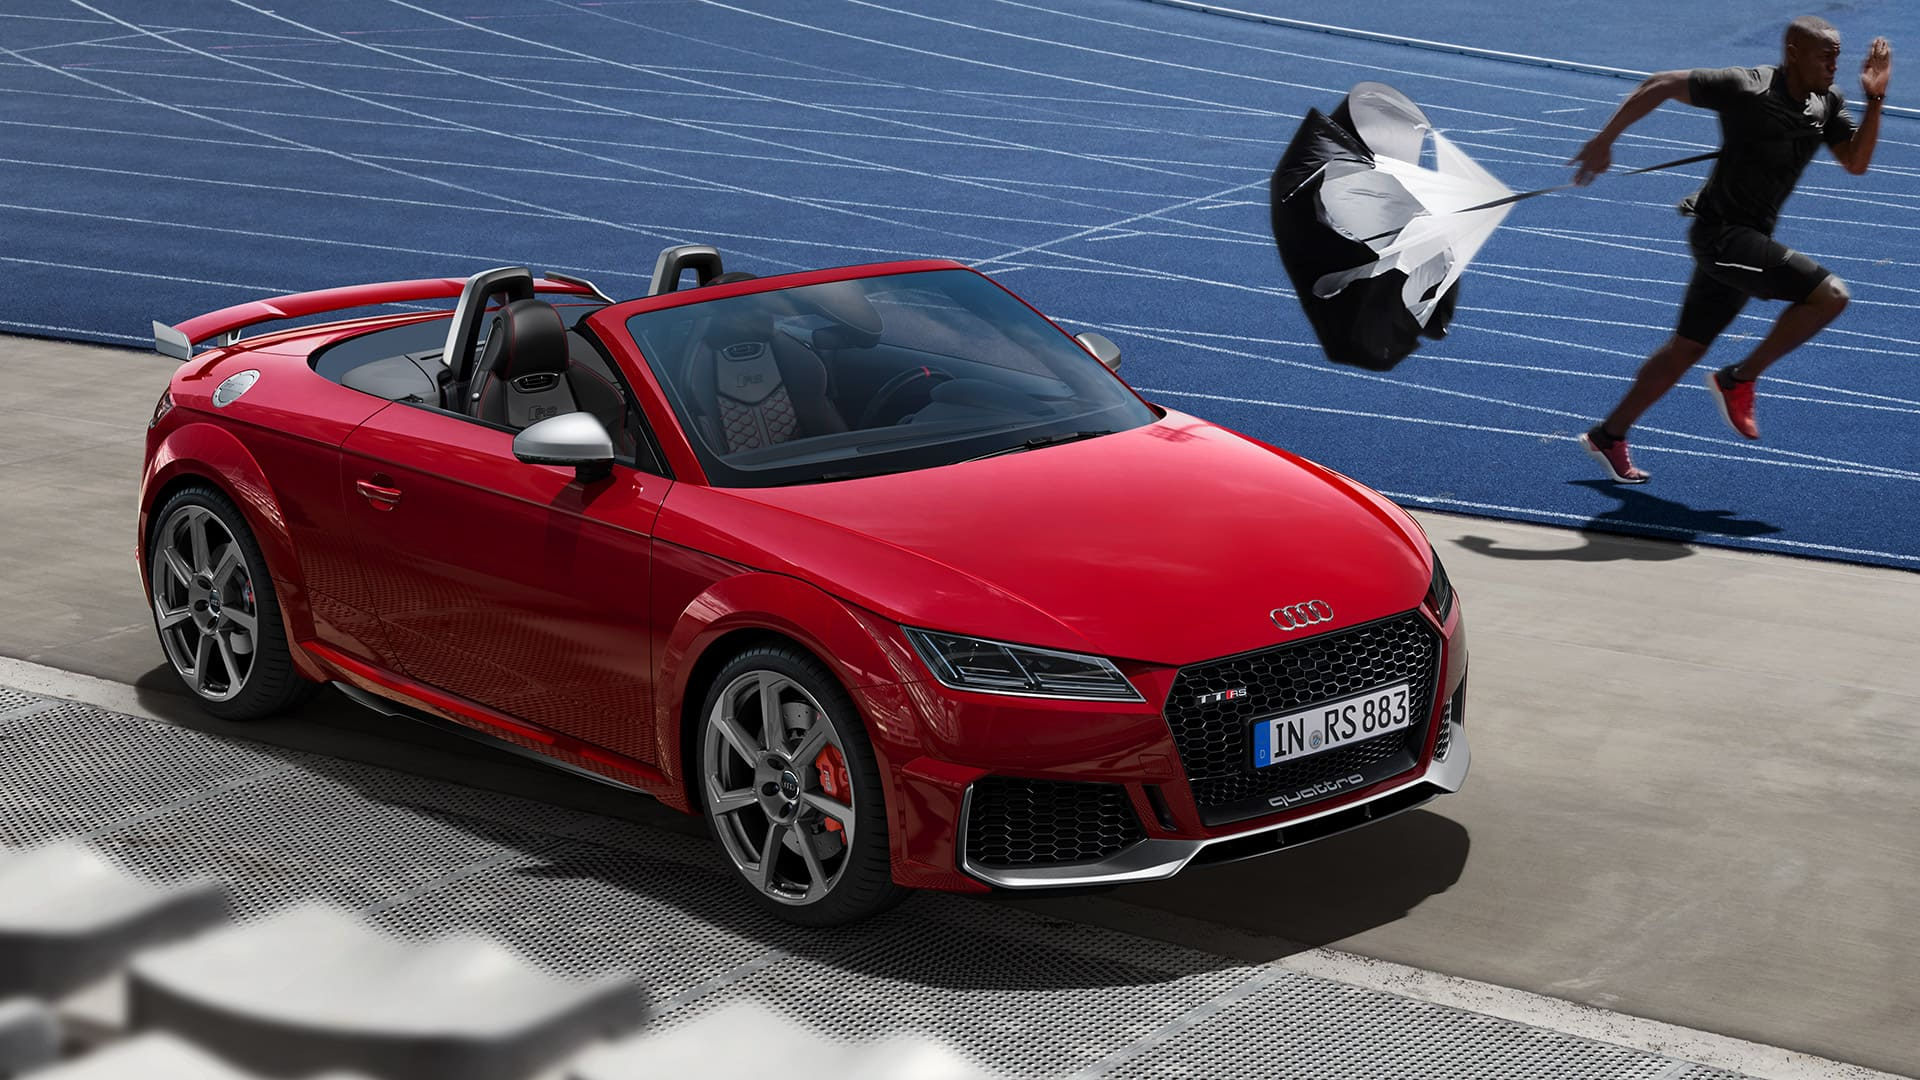 The Audi TT RS Roadster in the sprint duel with a top athlete